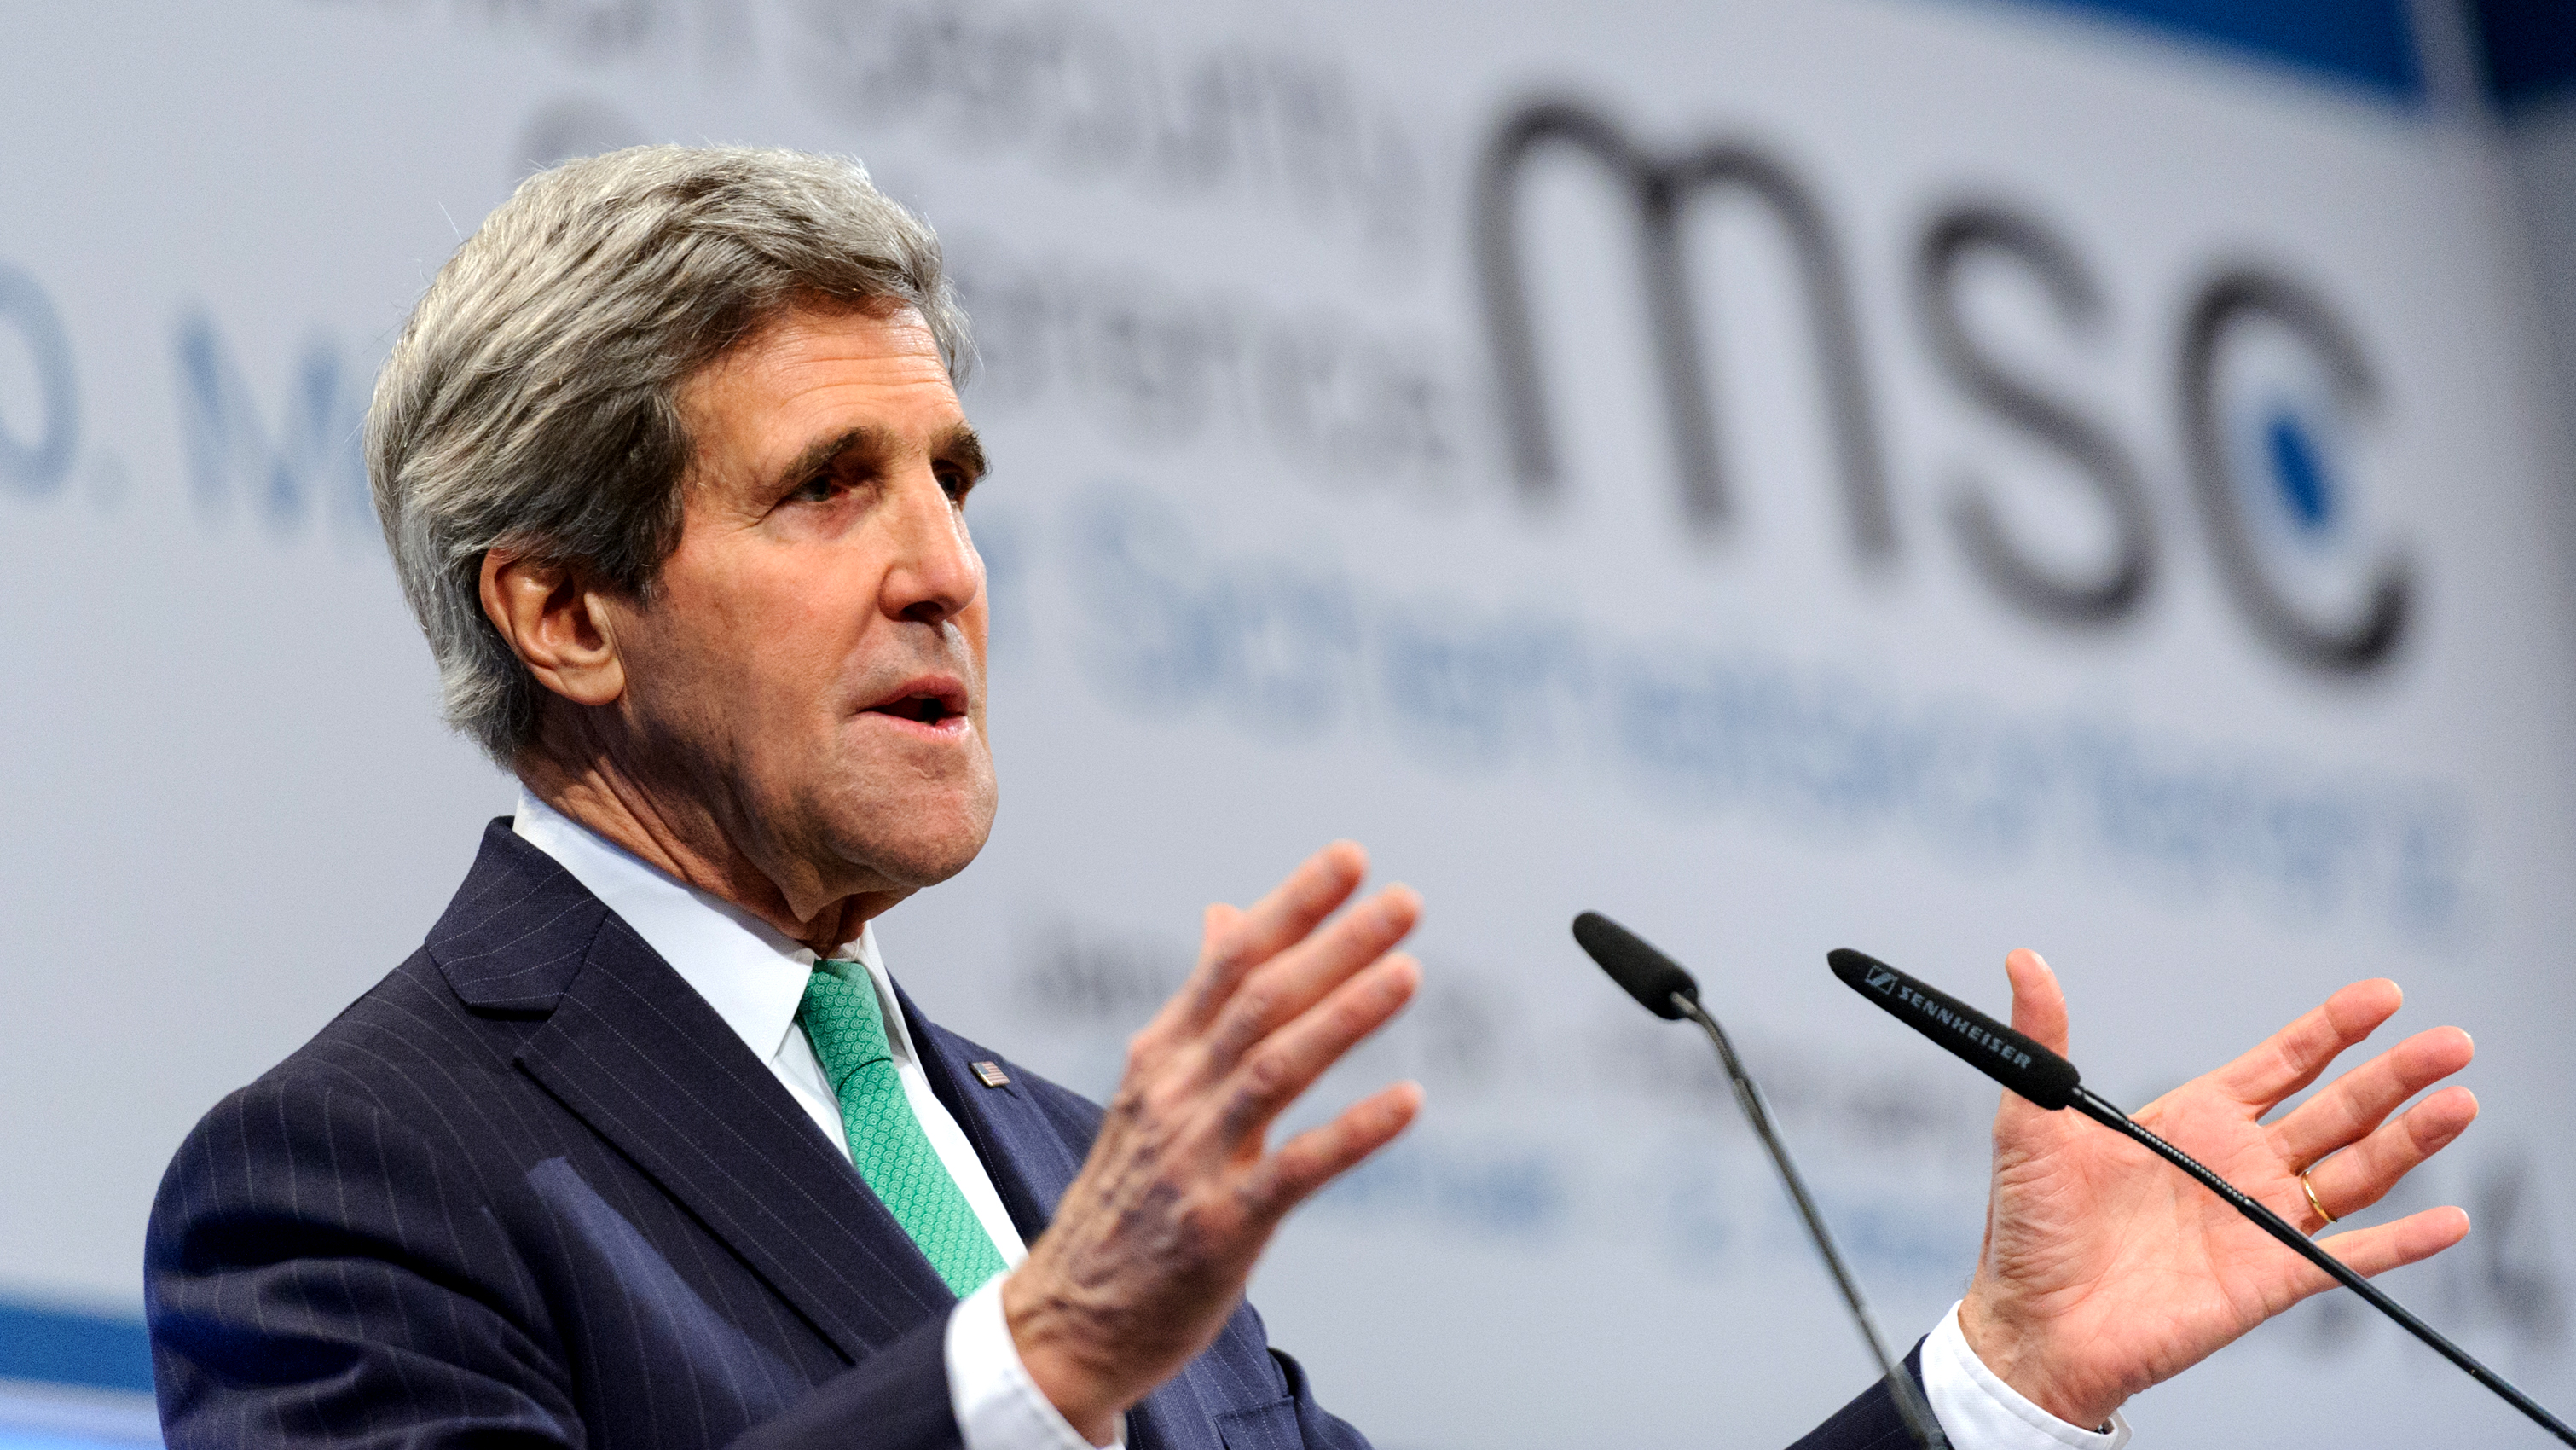 Reporting Truth is Not a crime: John Kerry